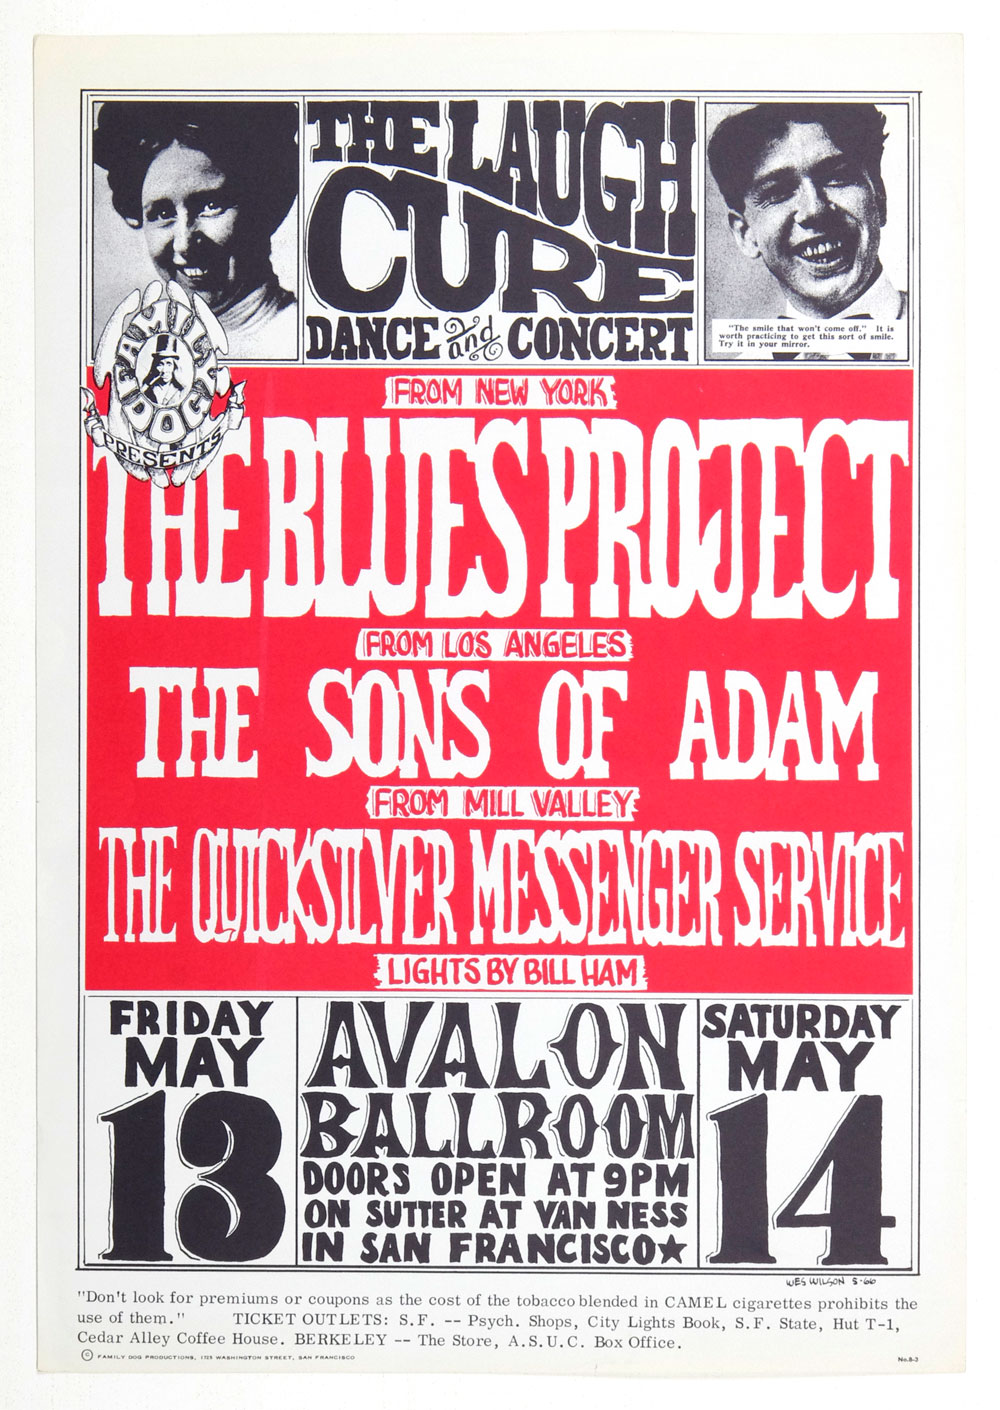 Family Dog 008 Poster Laugh Cure 1966 May 13 Blues Project Quicksilver Messenger Service